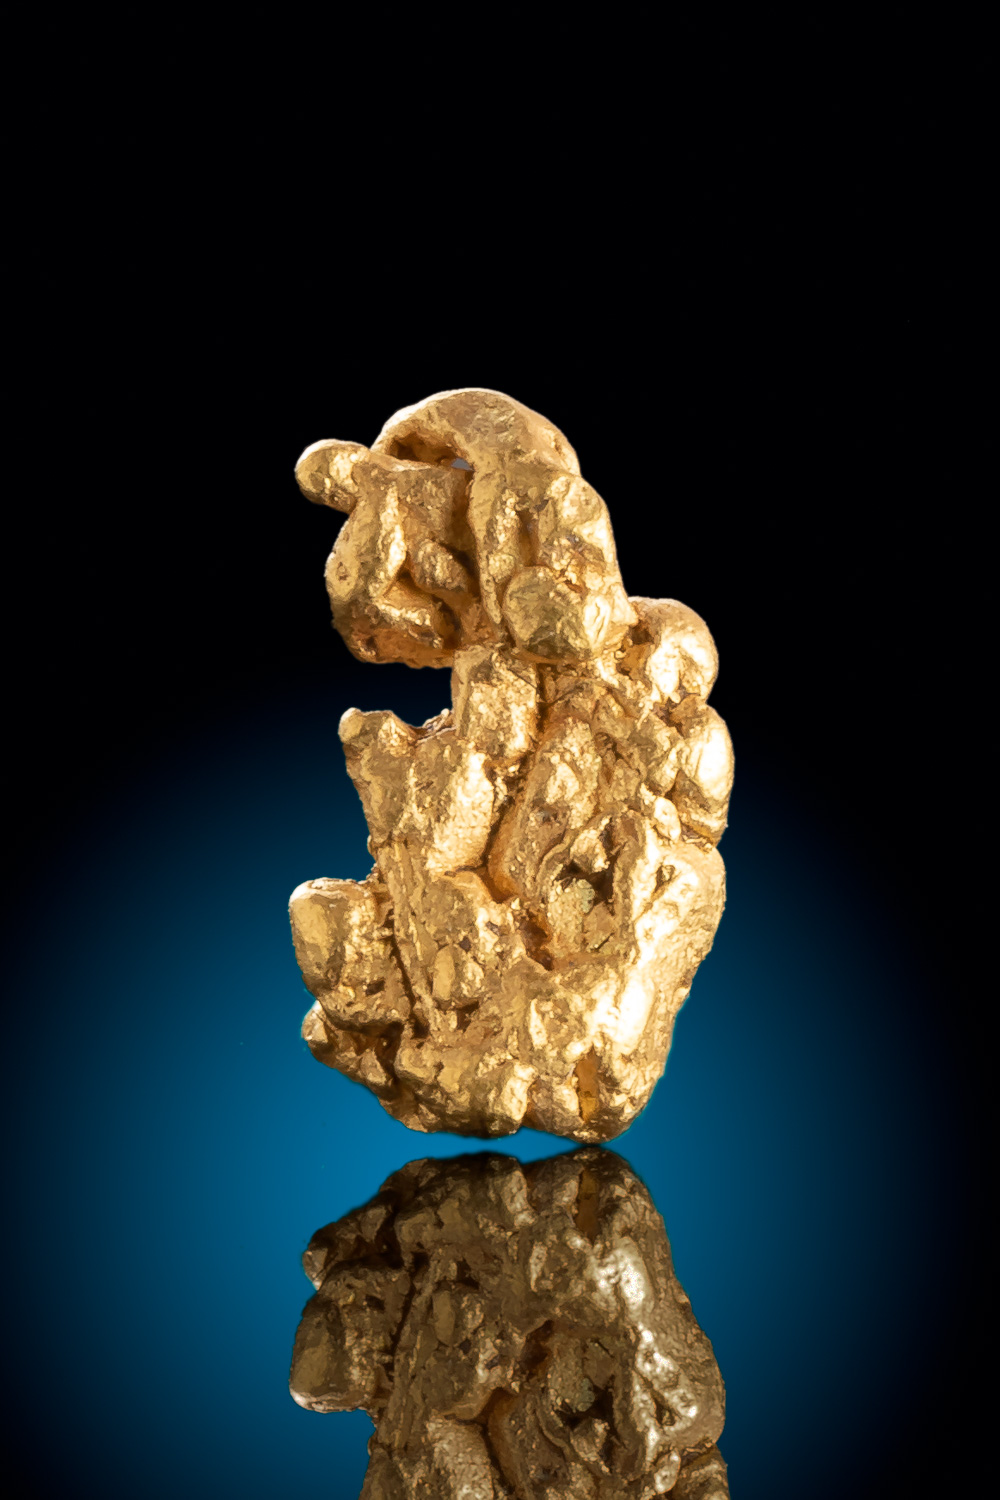 Colorado Gold Nugget - Interesting Texture and Shape